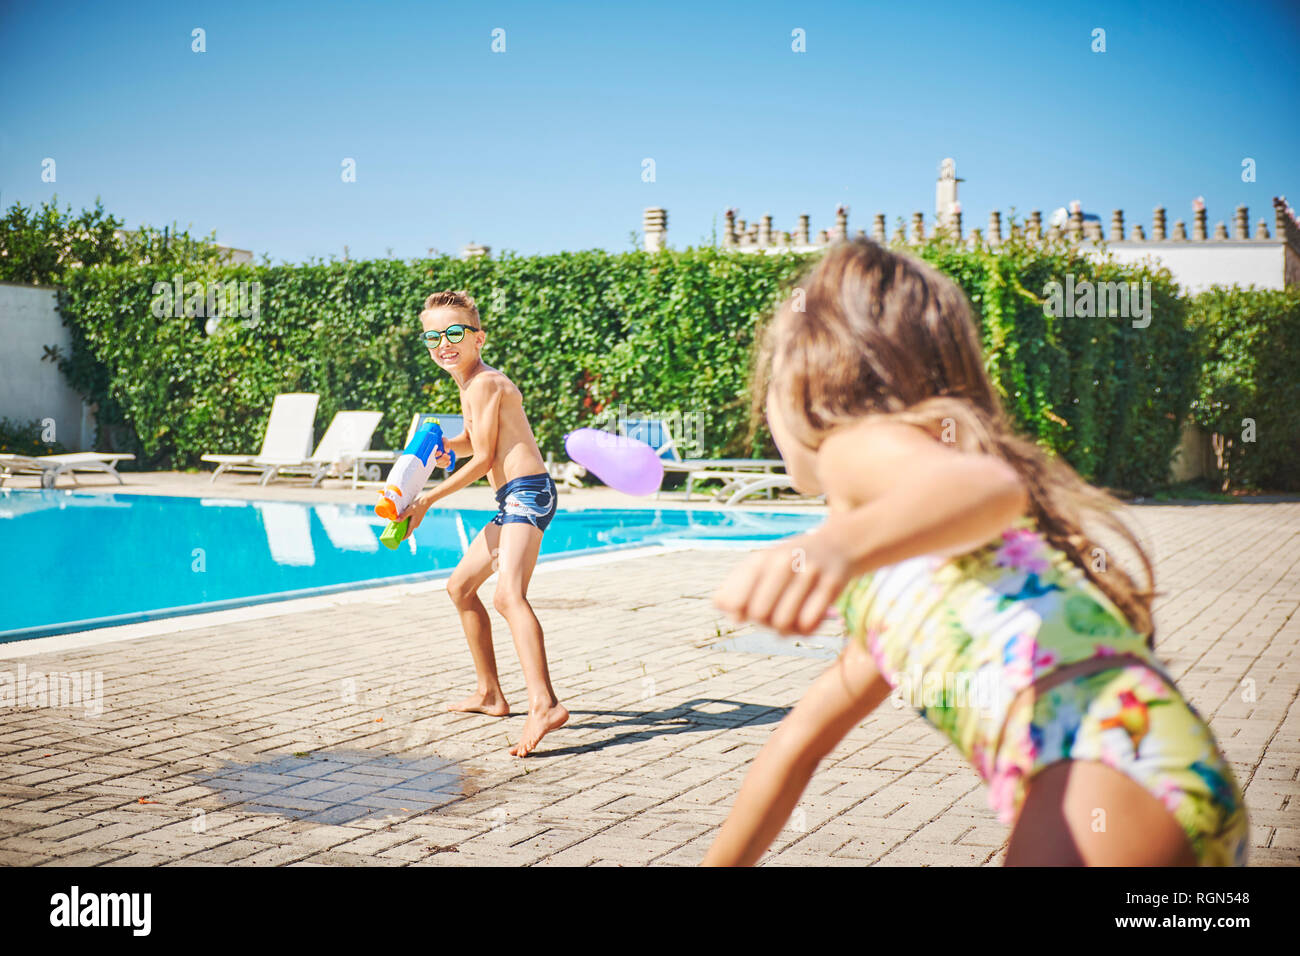 Girl and boy having a water fight with water gun and water bombs at the poolside - Stock Image